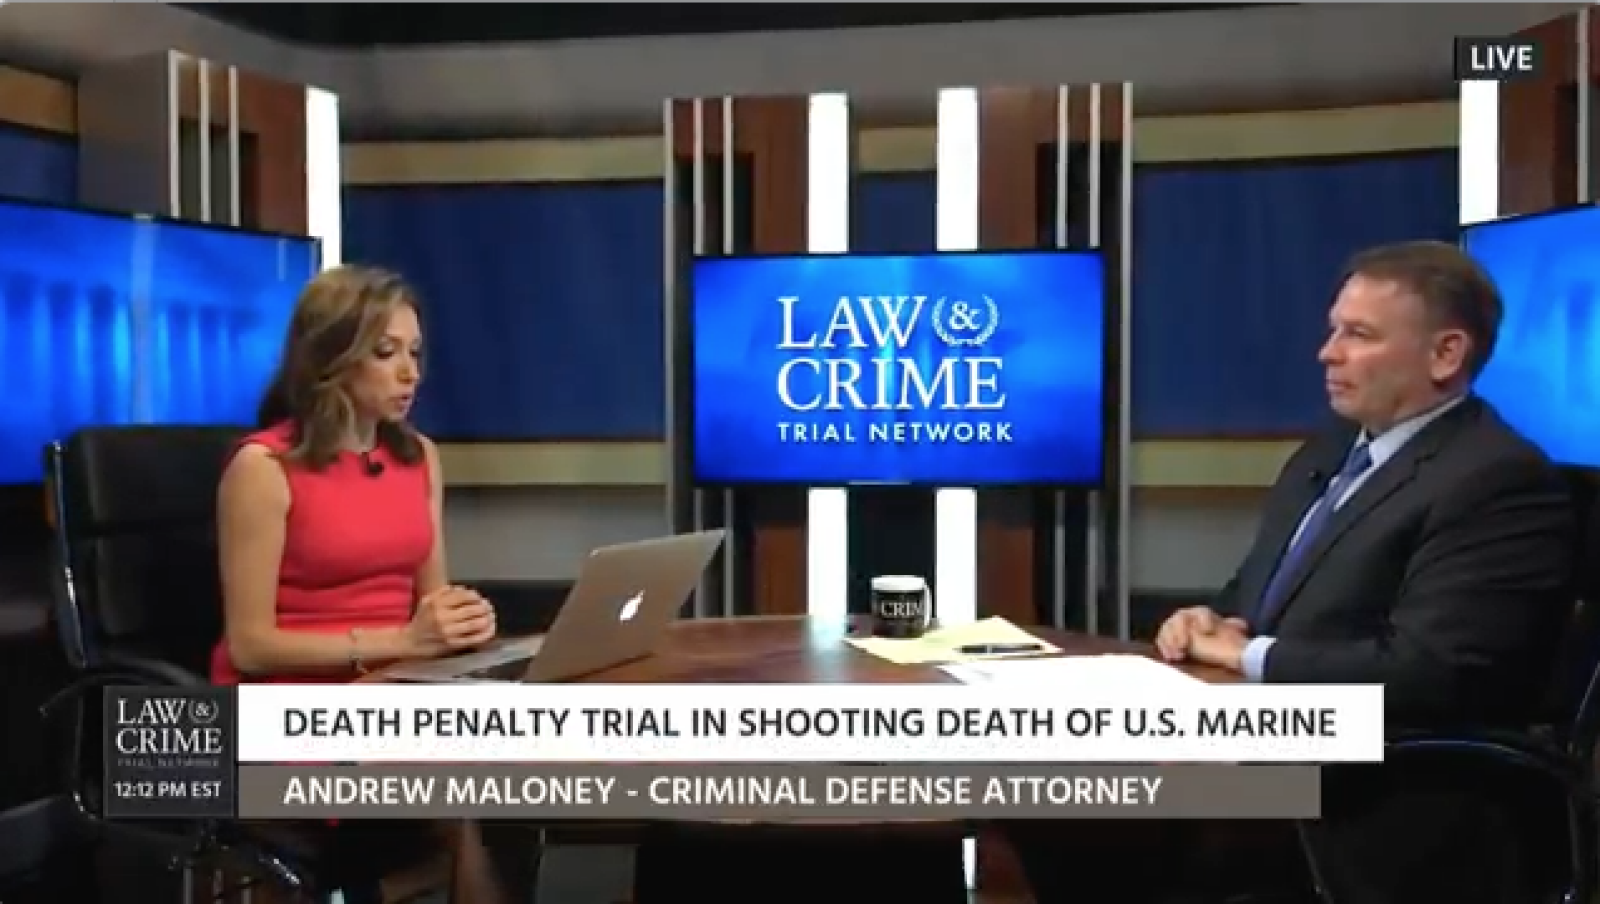 Partner Andrew J. Maloney offers analysis on murder trial of U.S. Marine